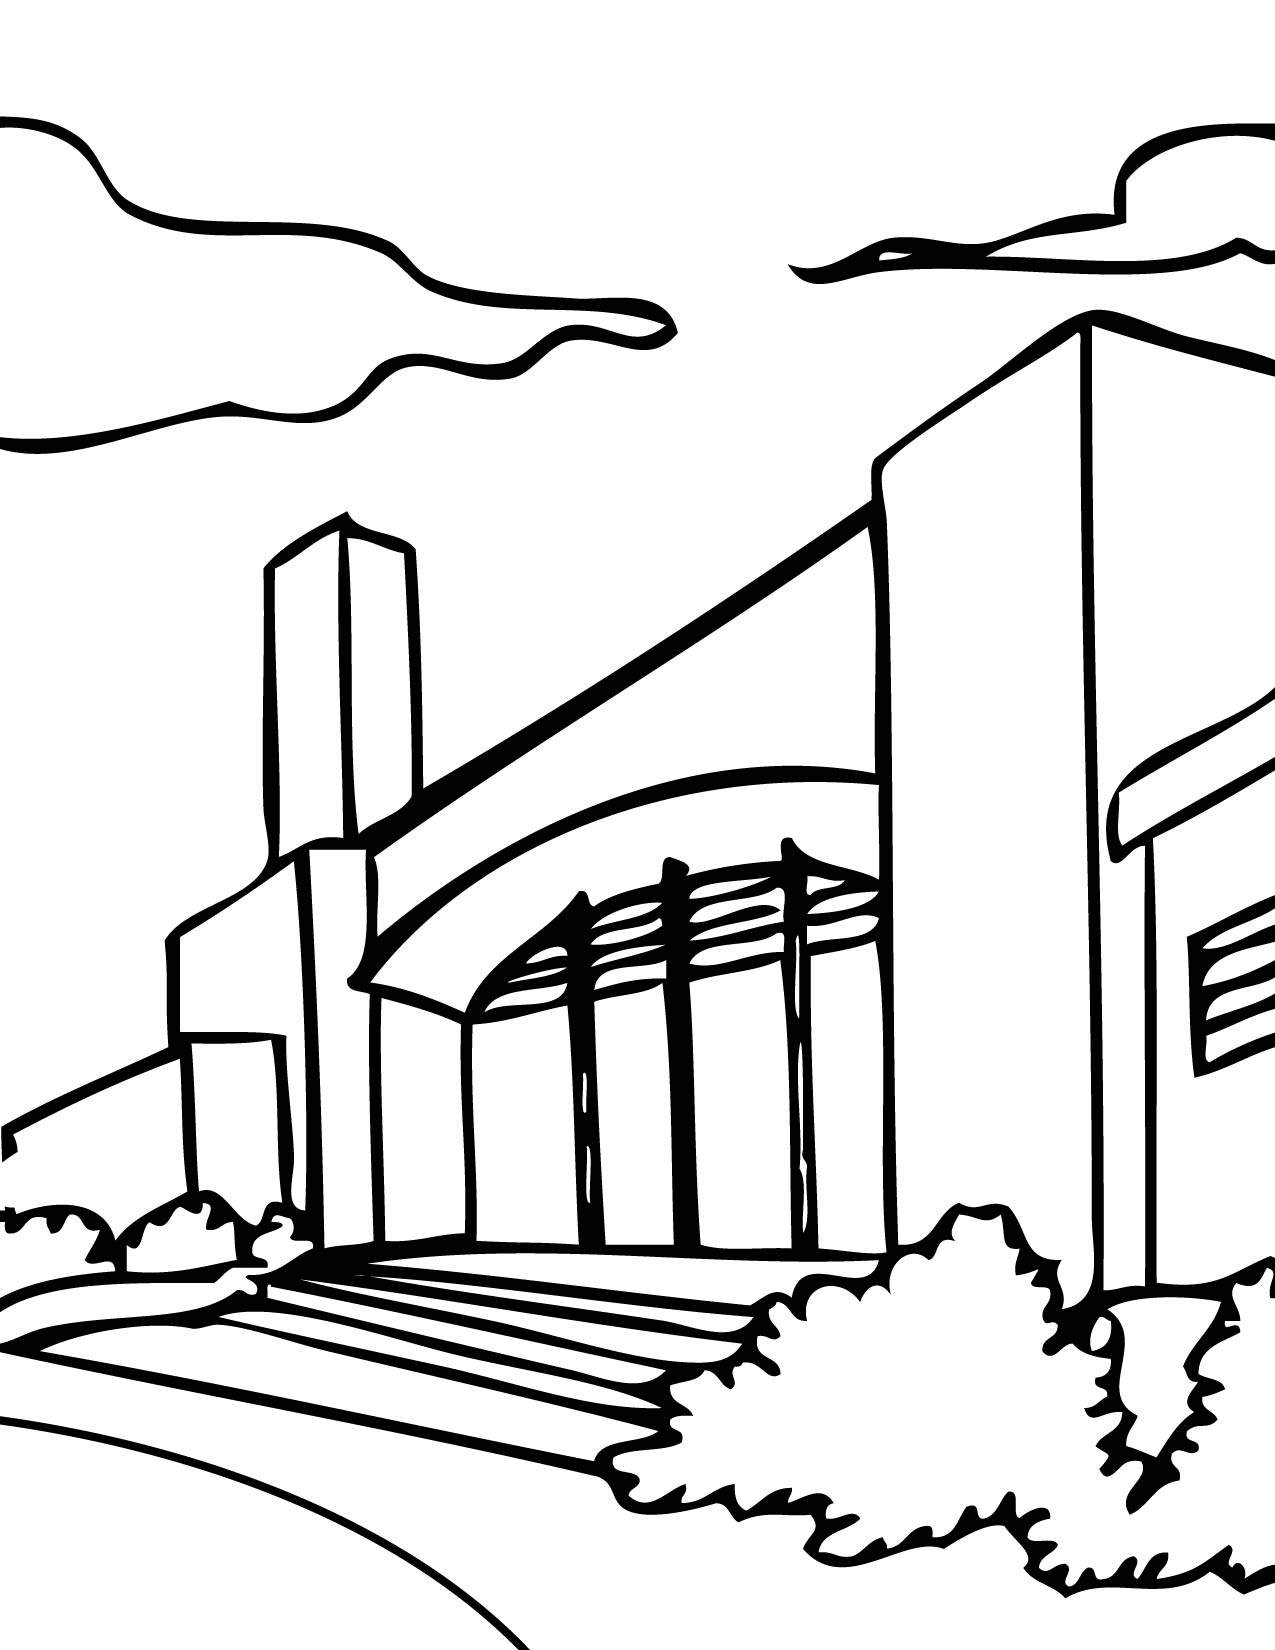 school coloring page handipoints